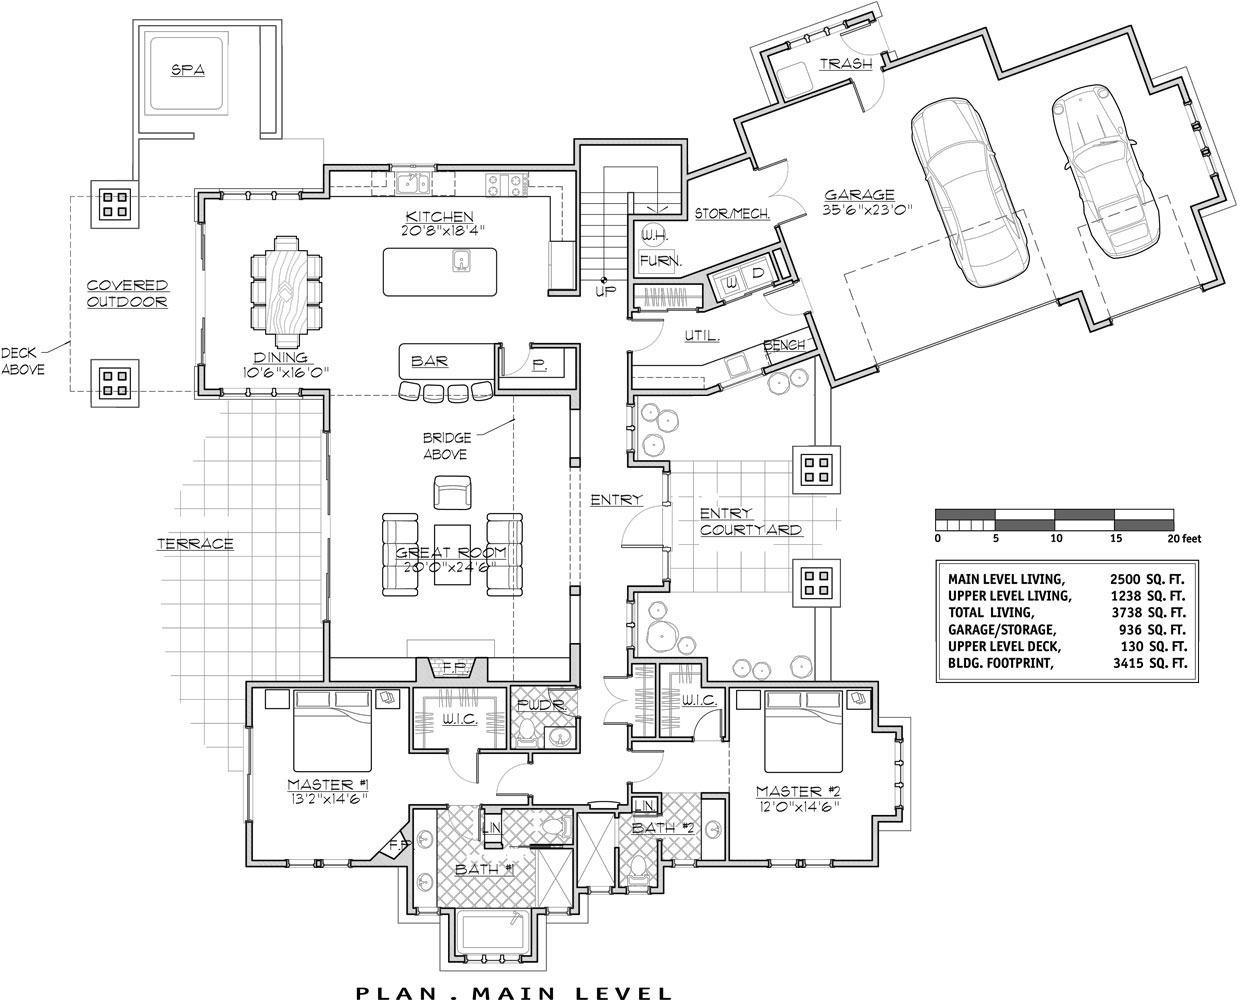 Luxury Lakehouse 9046  4 Bedrooms and 4 Baths  The House Designers